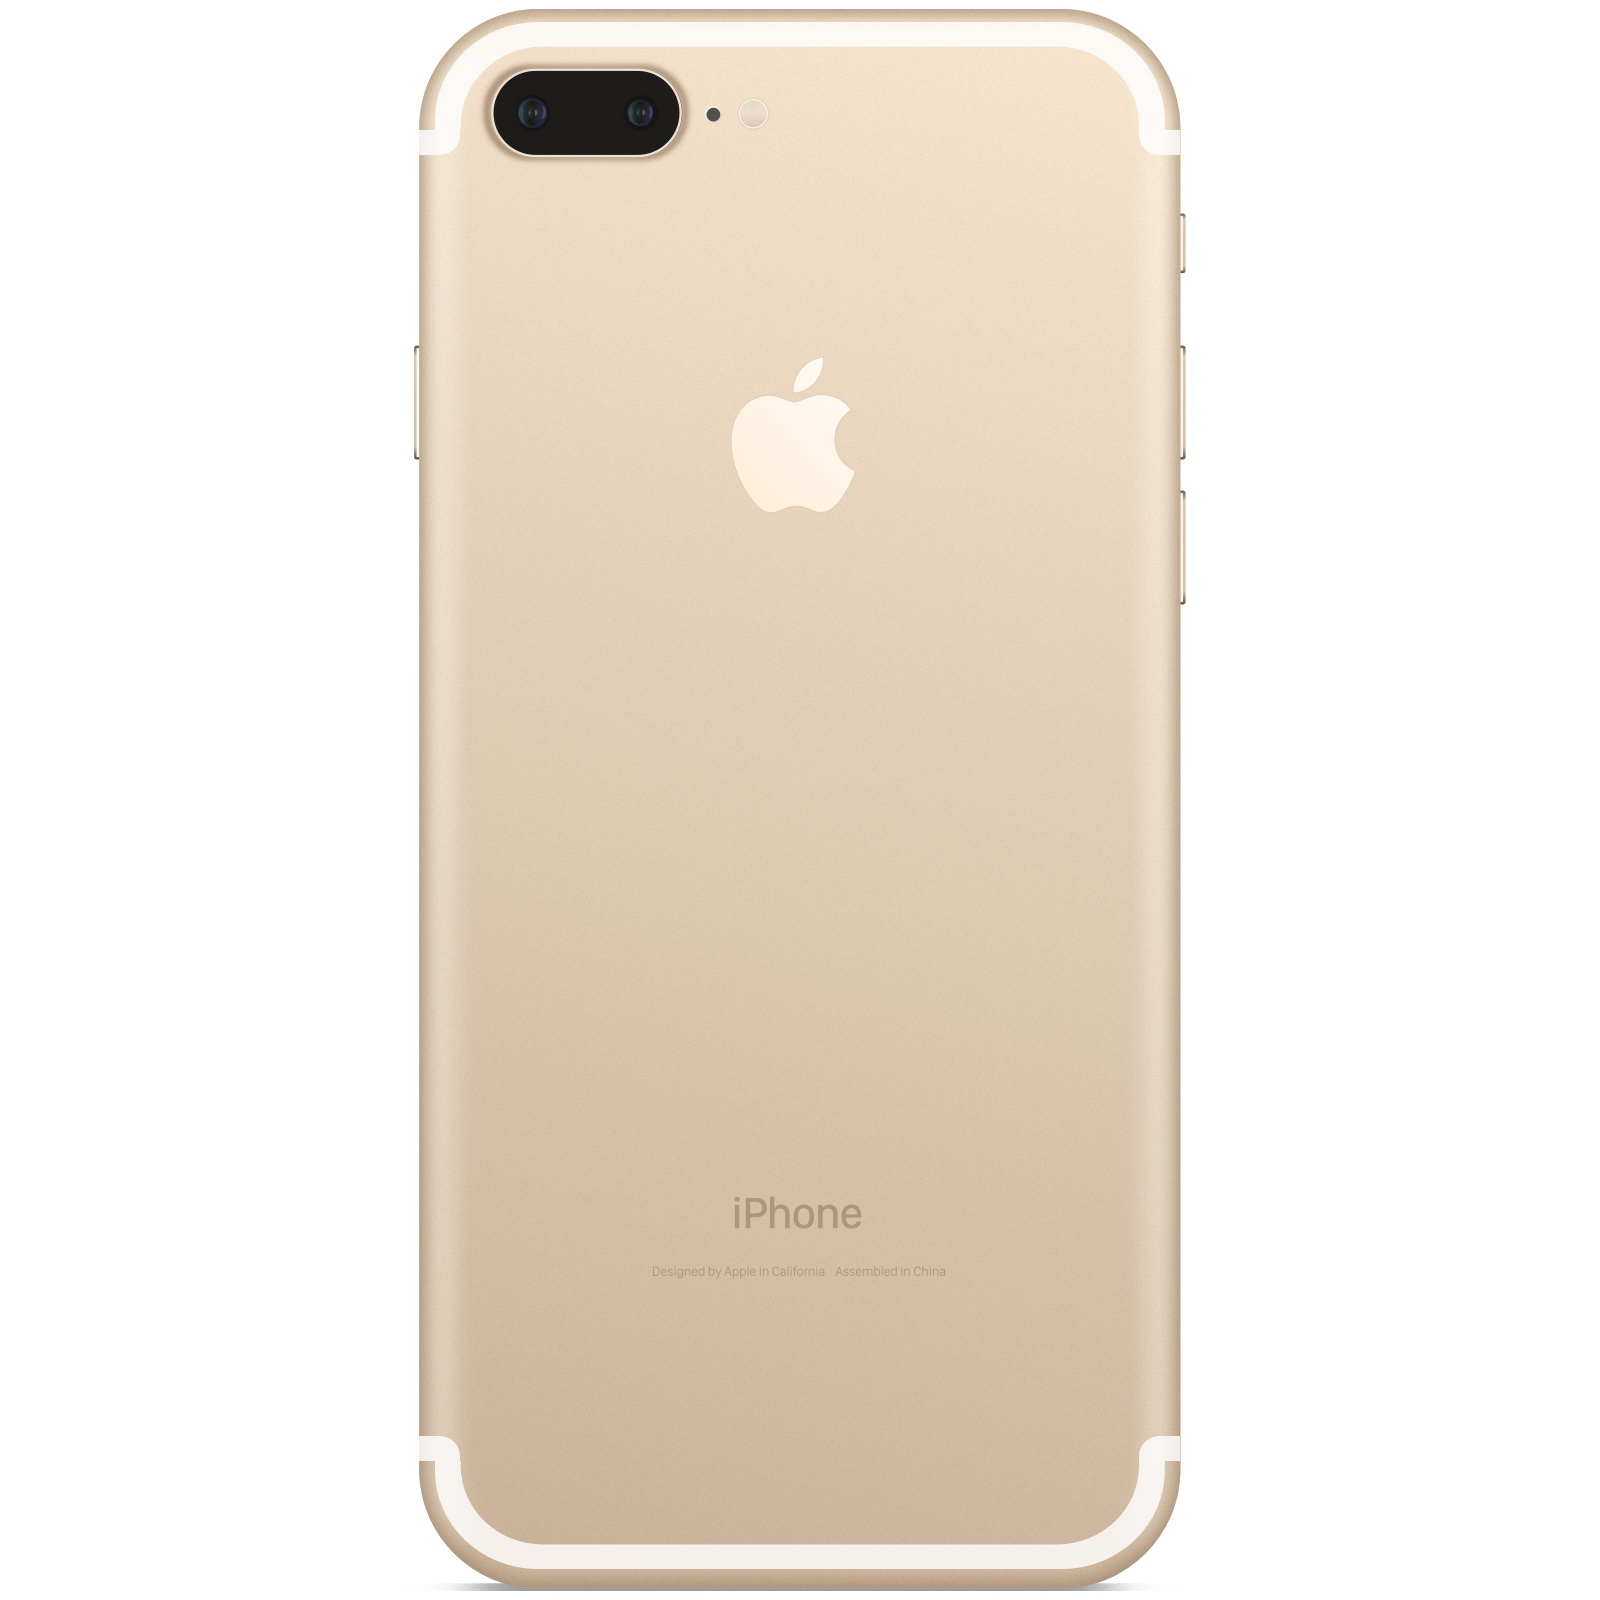 iPhone 7 Plus 256GB Gold